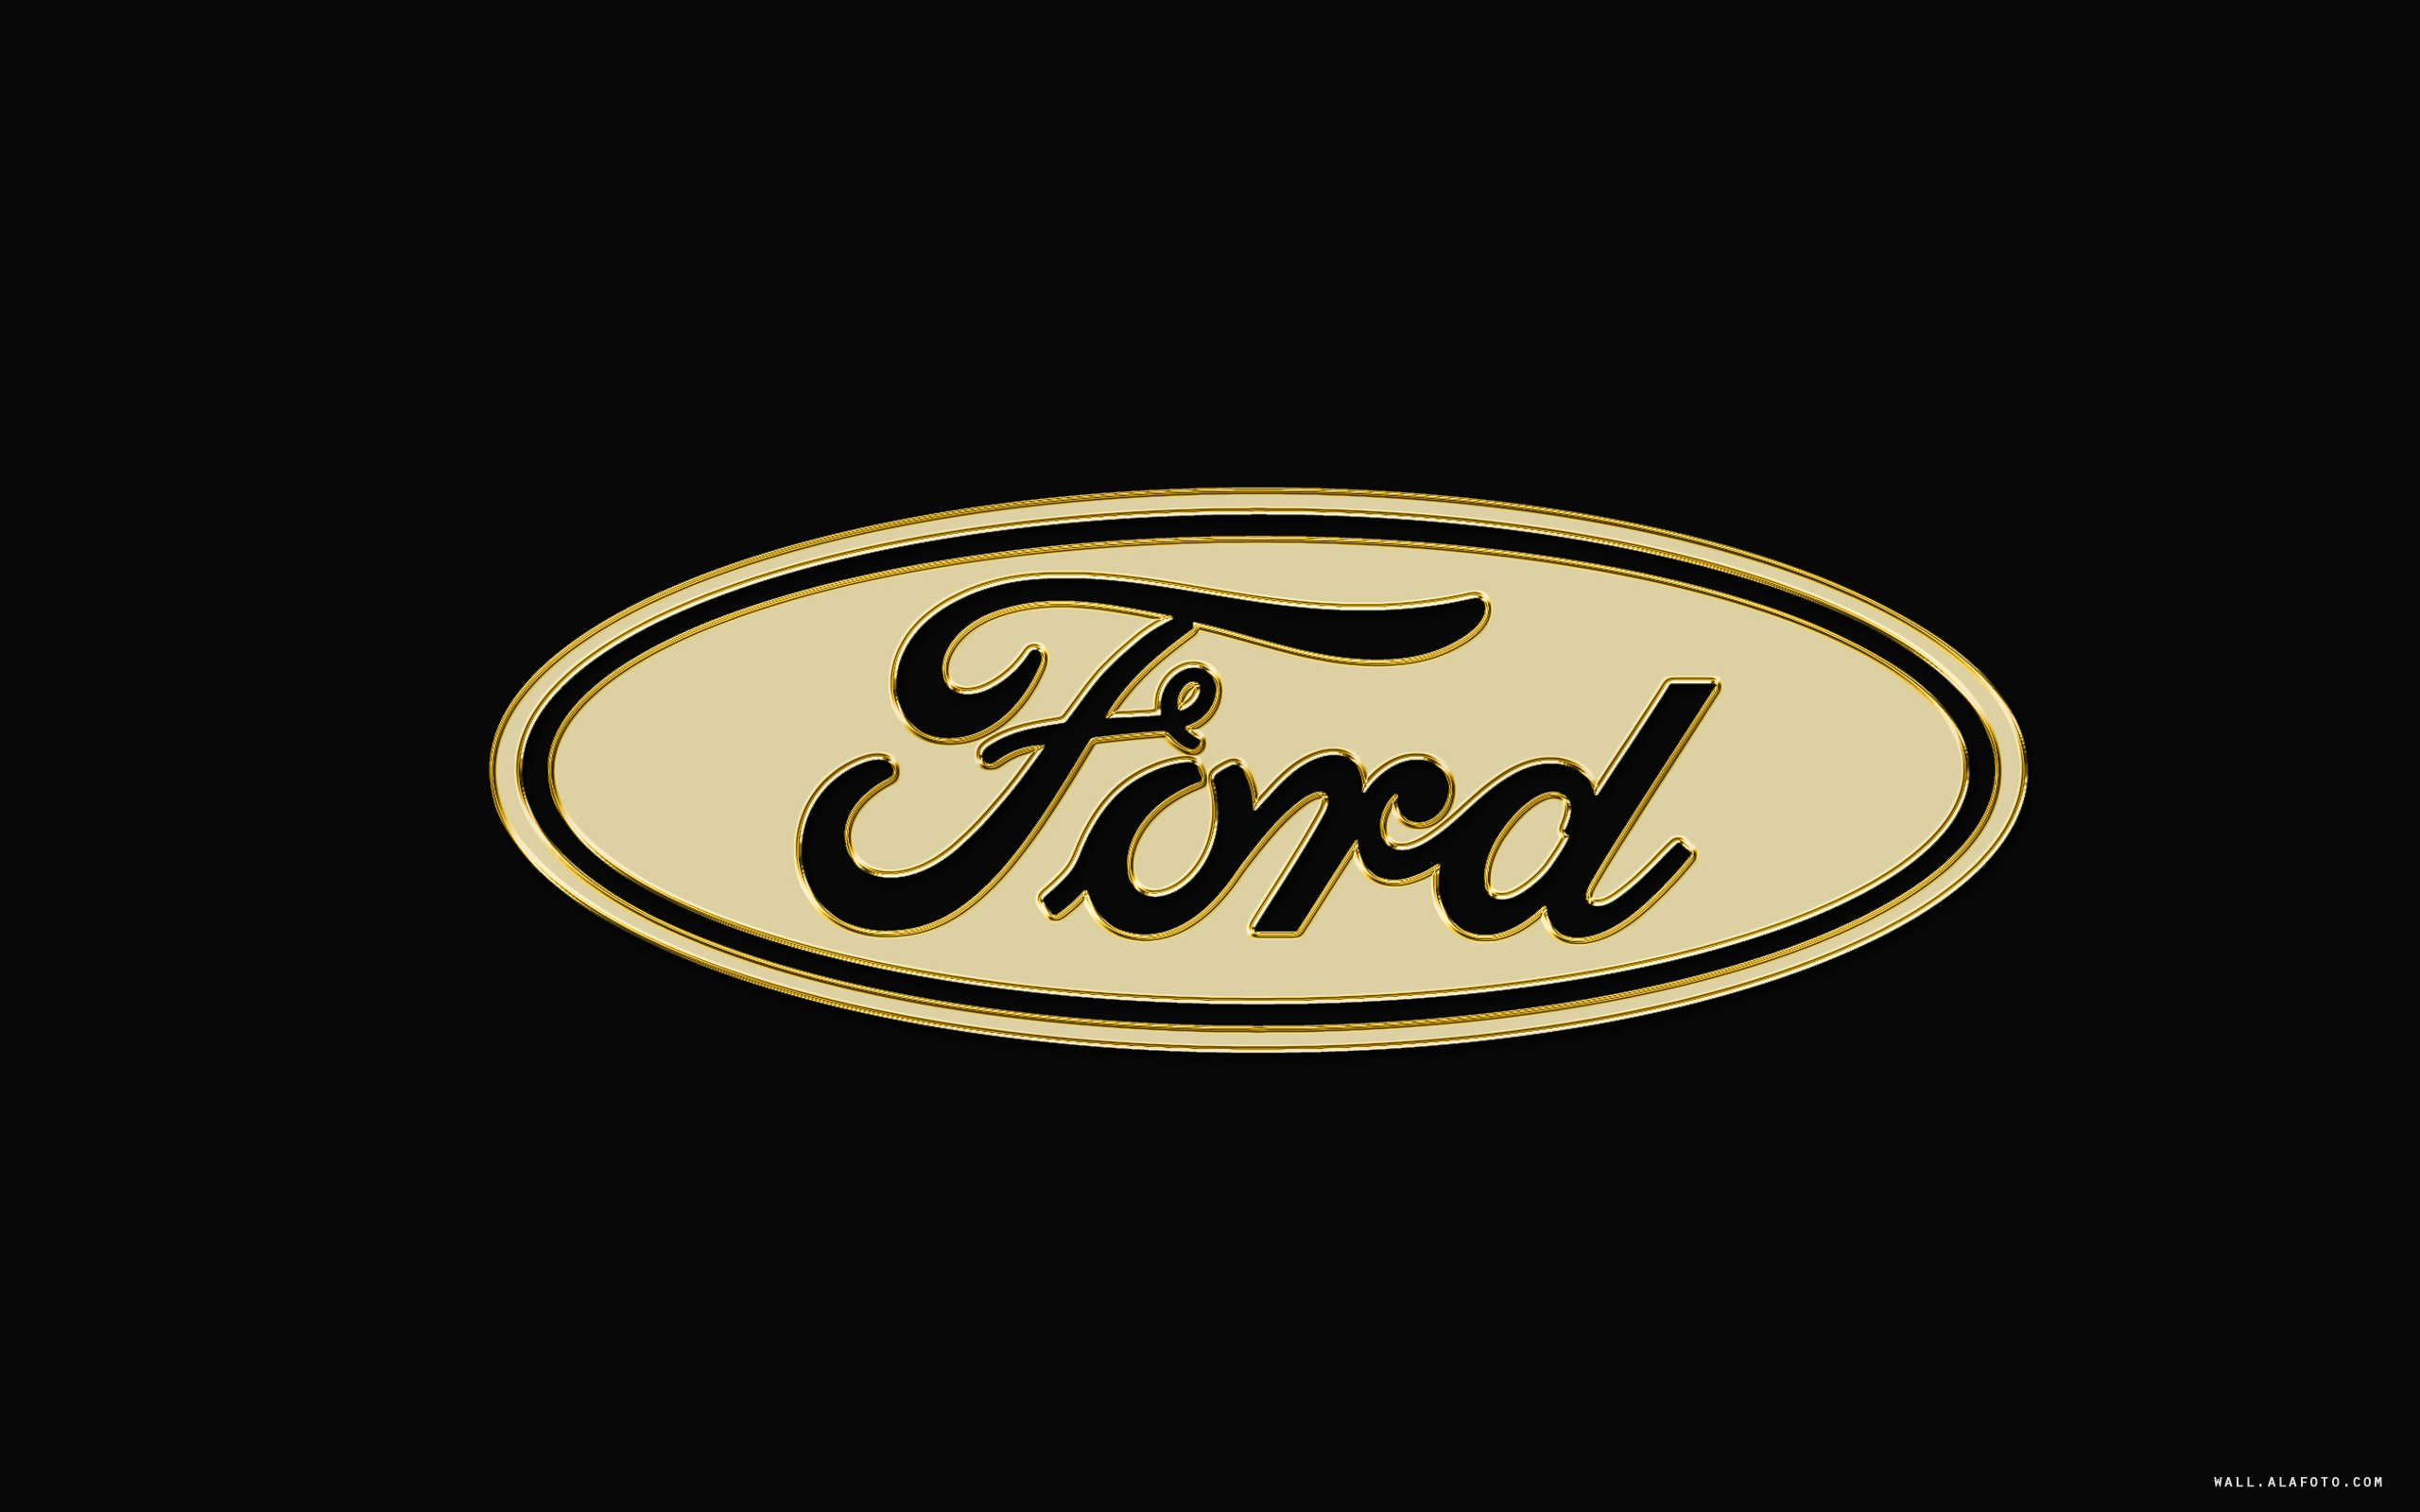 Ford Cars Logos   Ford logo 101   Alafoto Wallpapers 2560x1600